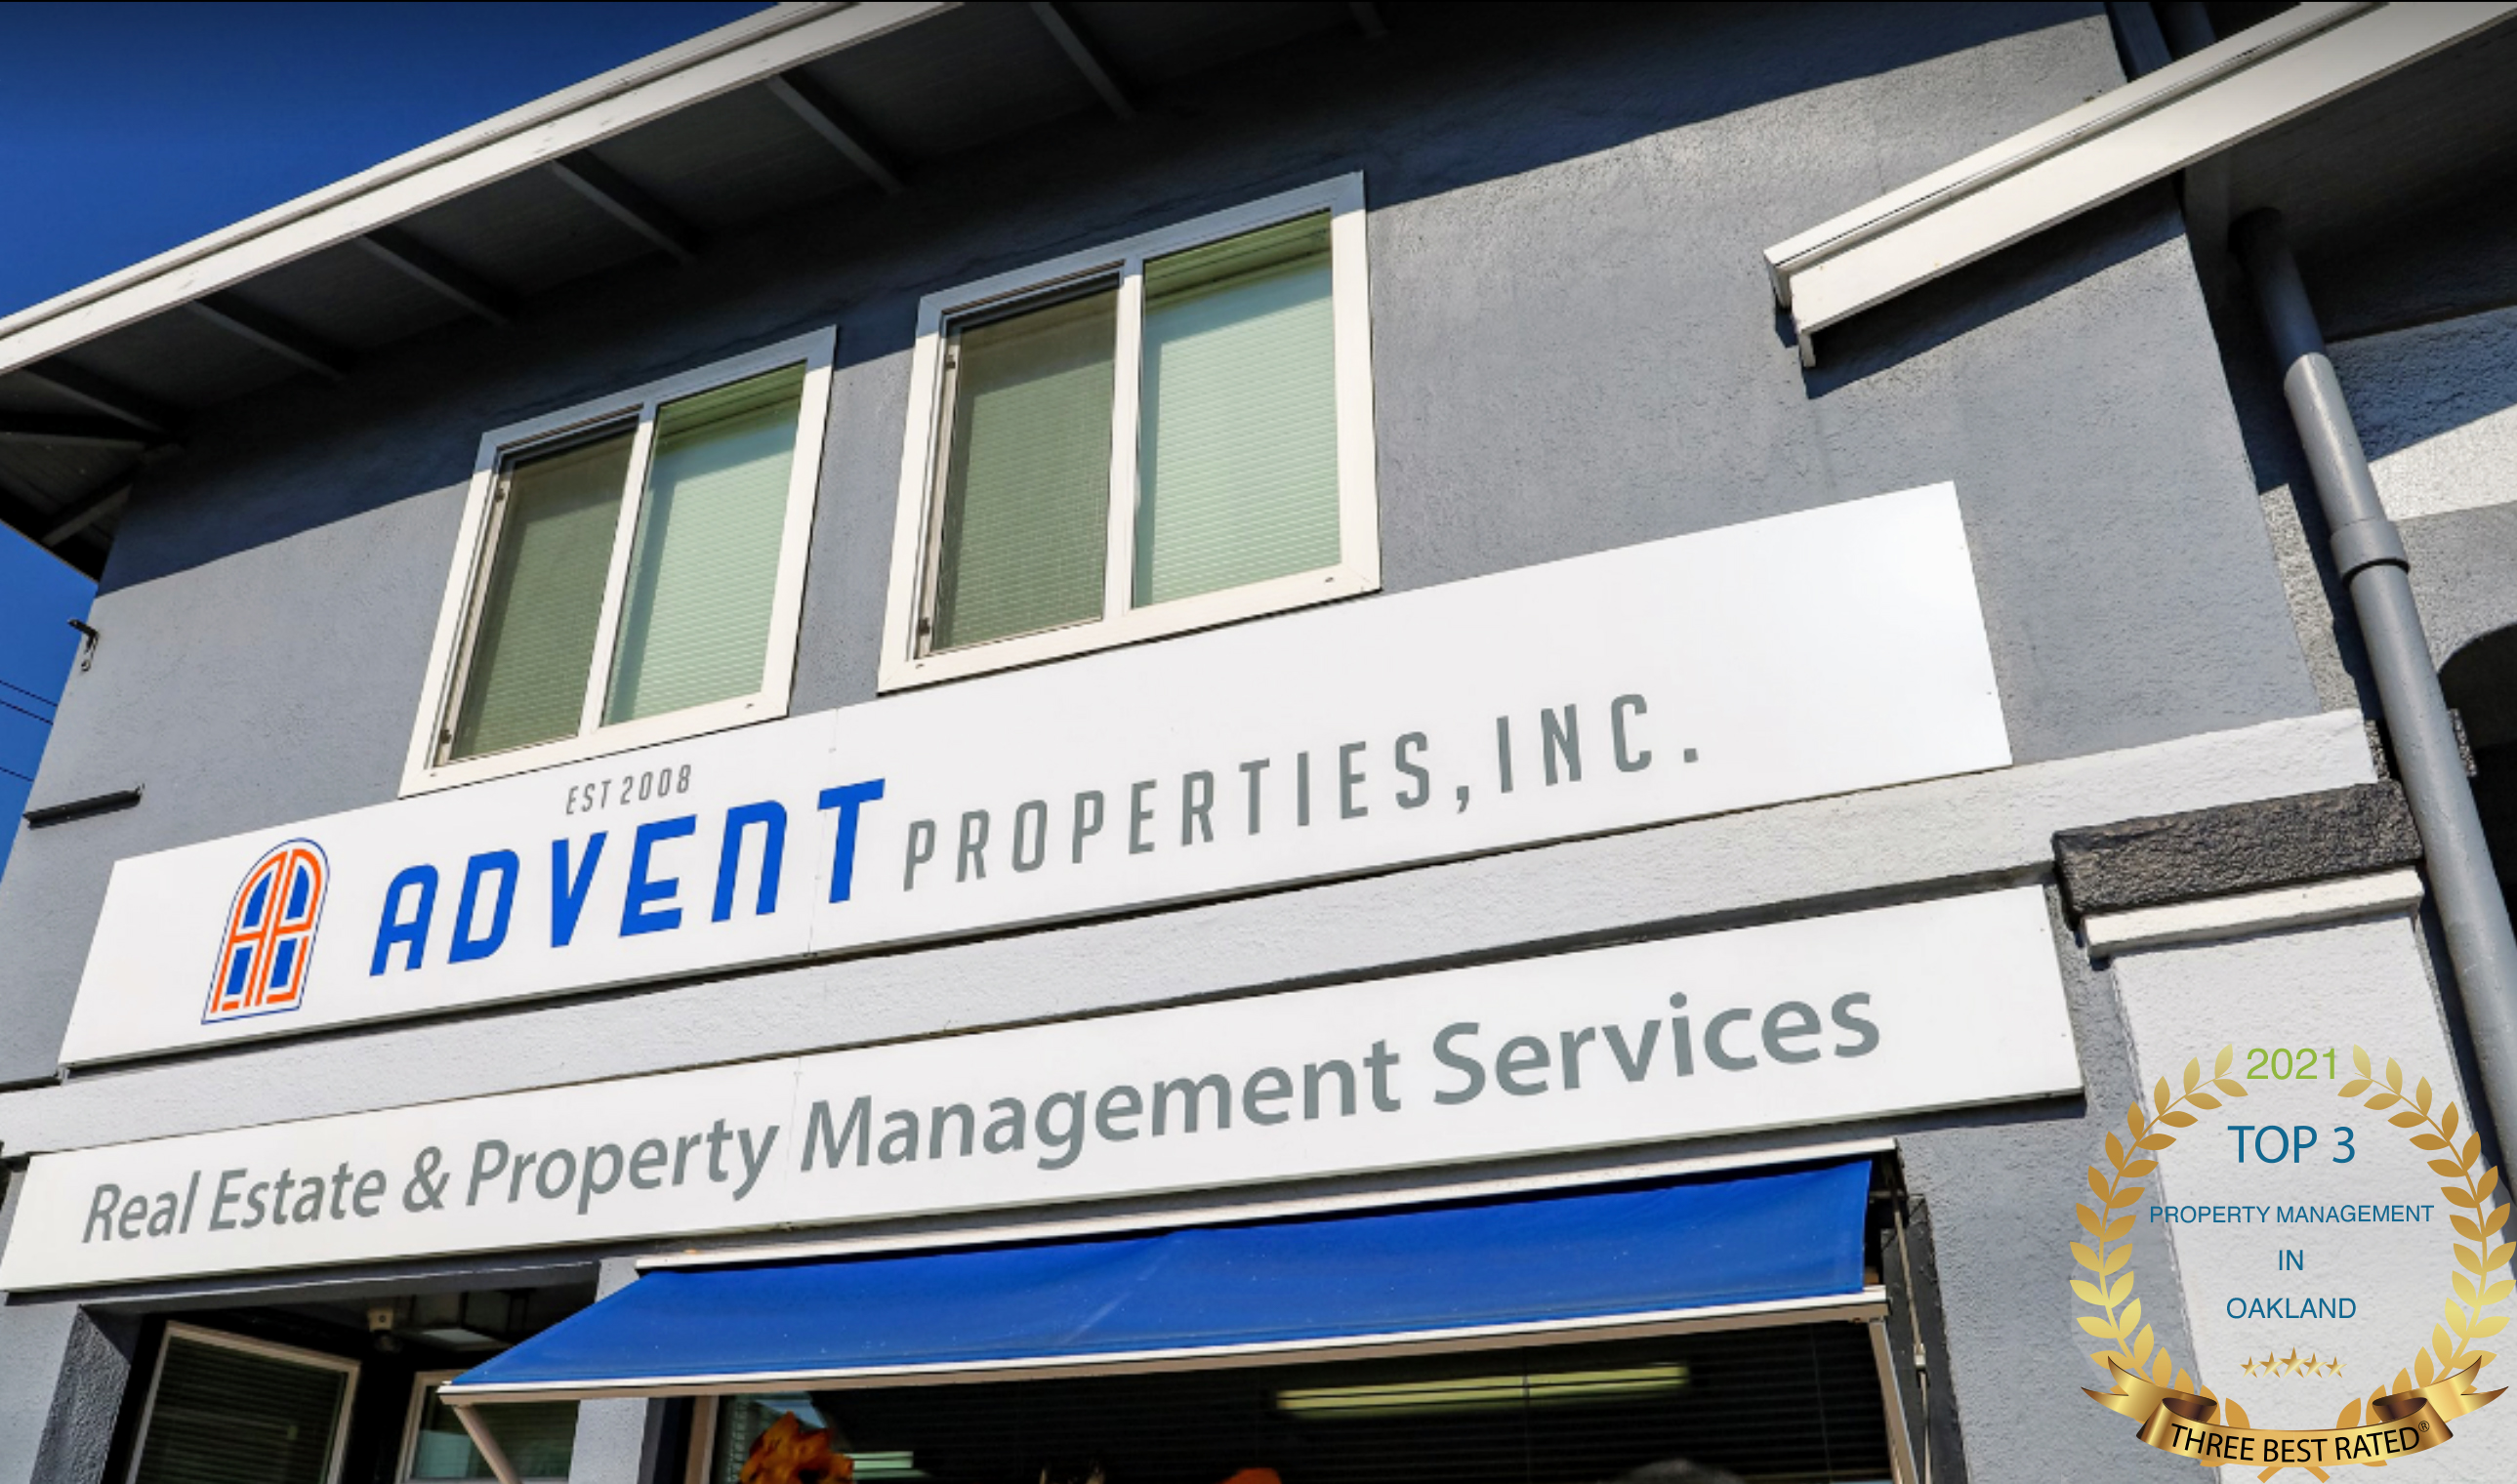 Top 3 Best Property Management in Oakland Awarded to Advent Properties, Inc.